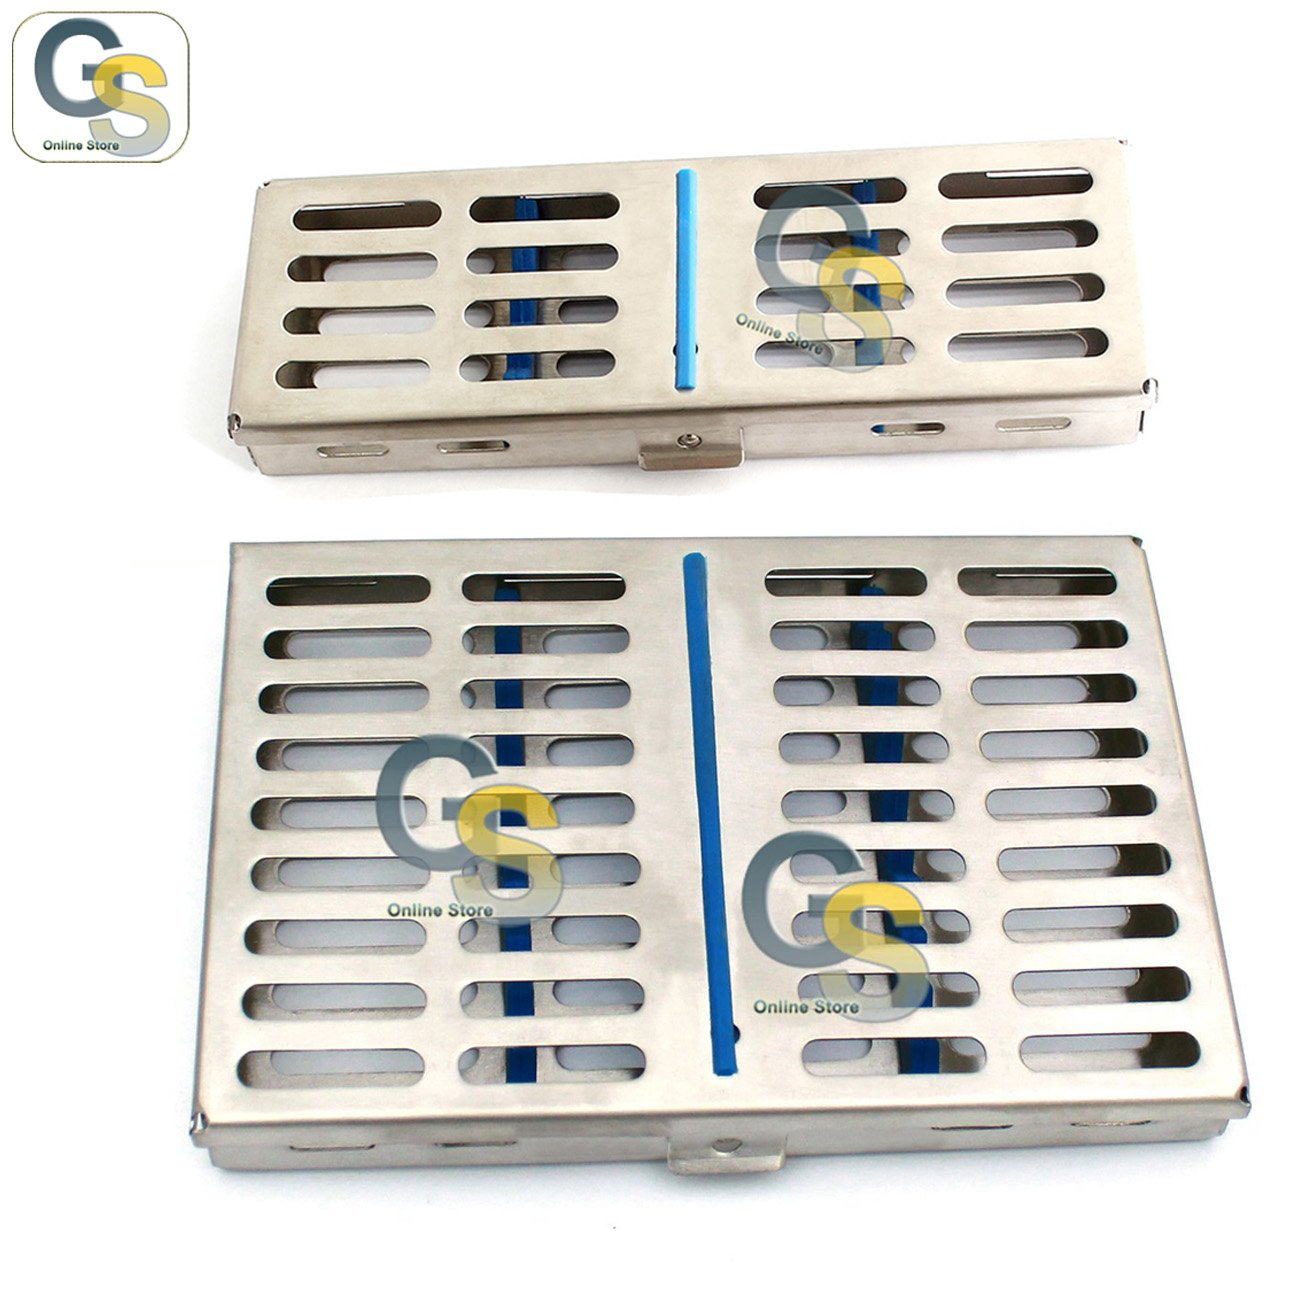 G.S 2 STAINLESS STEEL STERILIZATION CASSETTE BOX TRAY FOR 5 AND 10 INSTRUMENTS by G.S SURGICAL